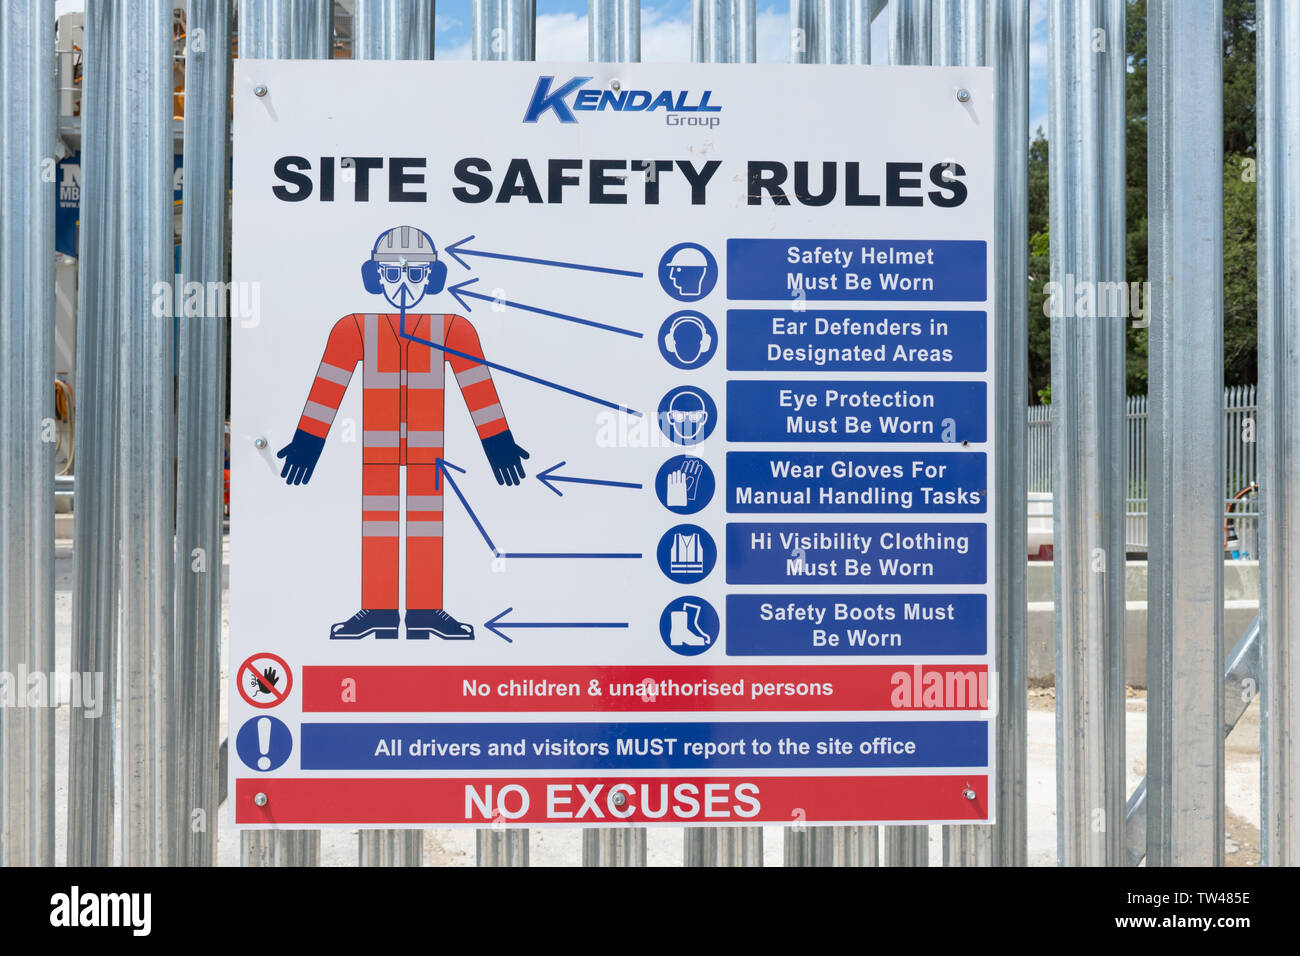 notice-at-an-industrial-site-concrete-batching-plant-explaining-site-safety-rules-about-personal-protective-equipment-uk-TW485E.jpg